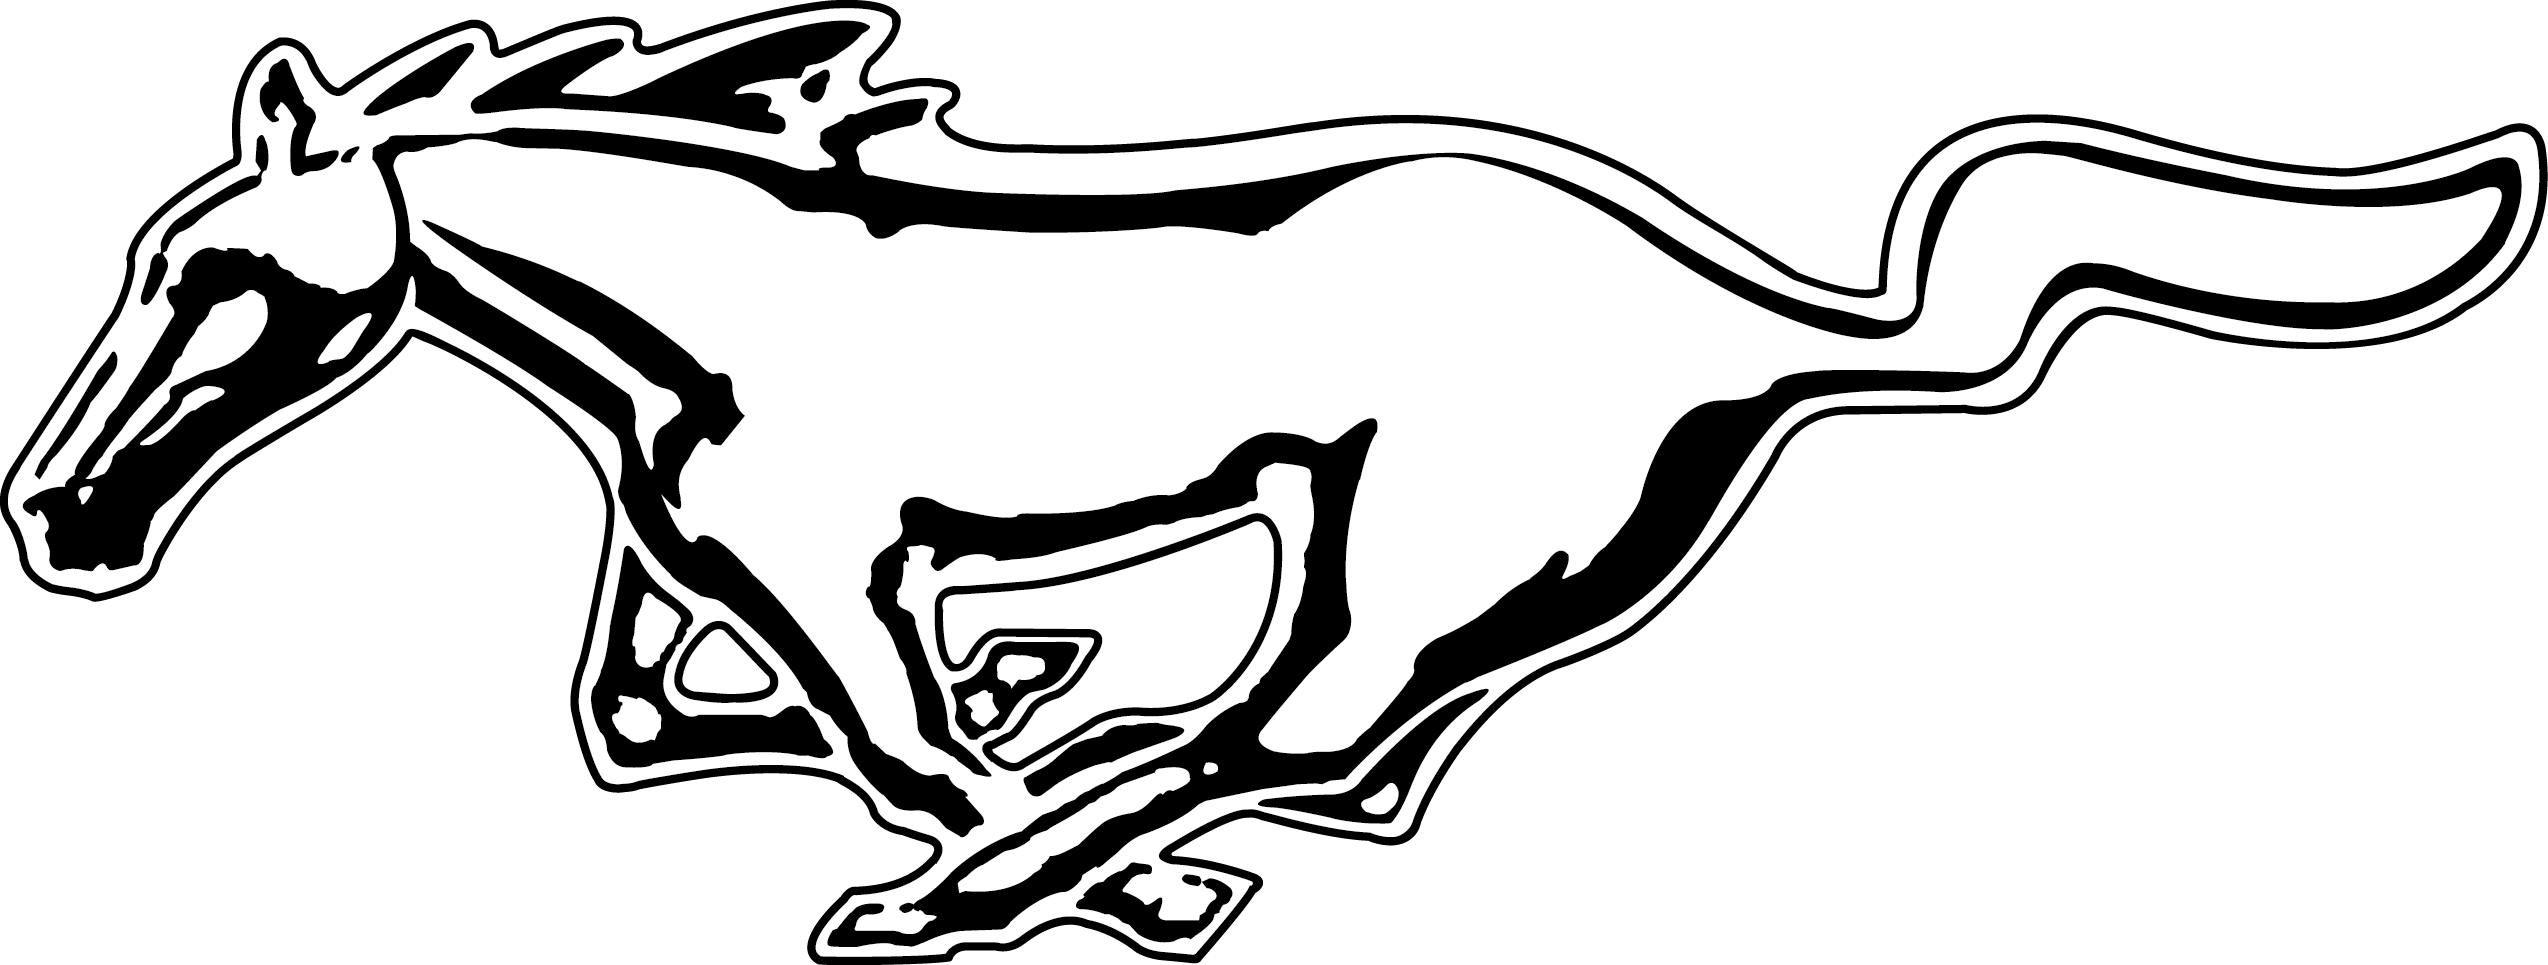 Mustang car clipart black and white stock Mustang Logo [Ford - PDF] PNG Free Downloads, Logo Brand Emblems ... stock